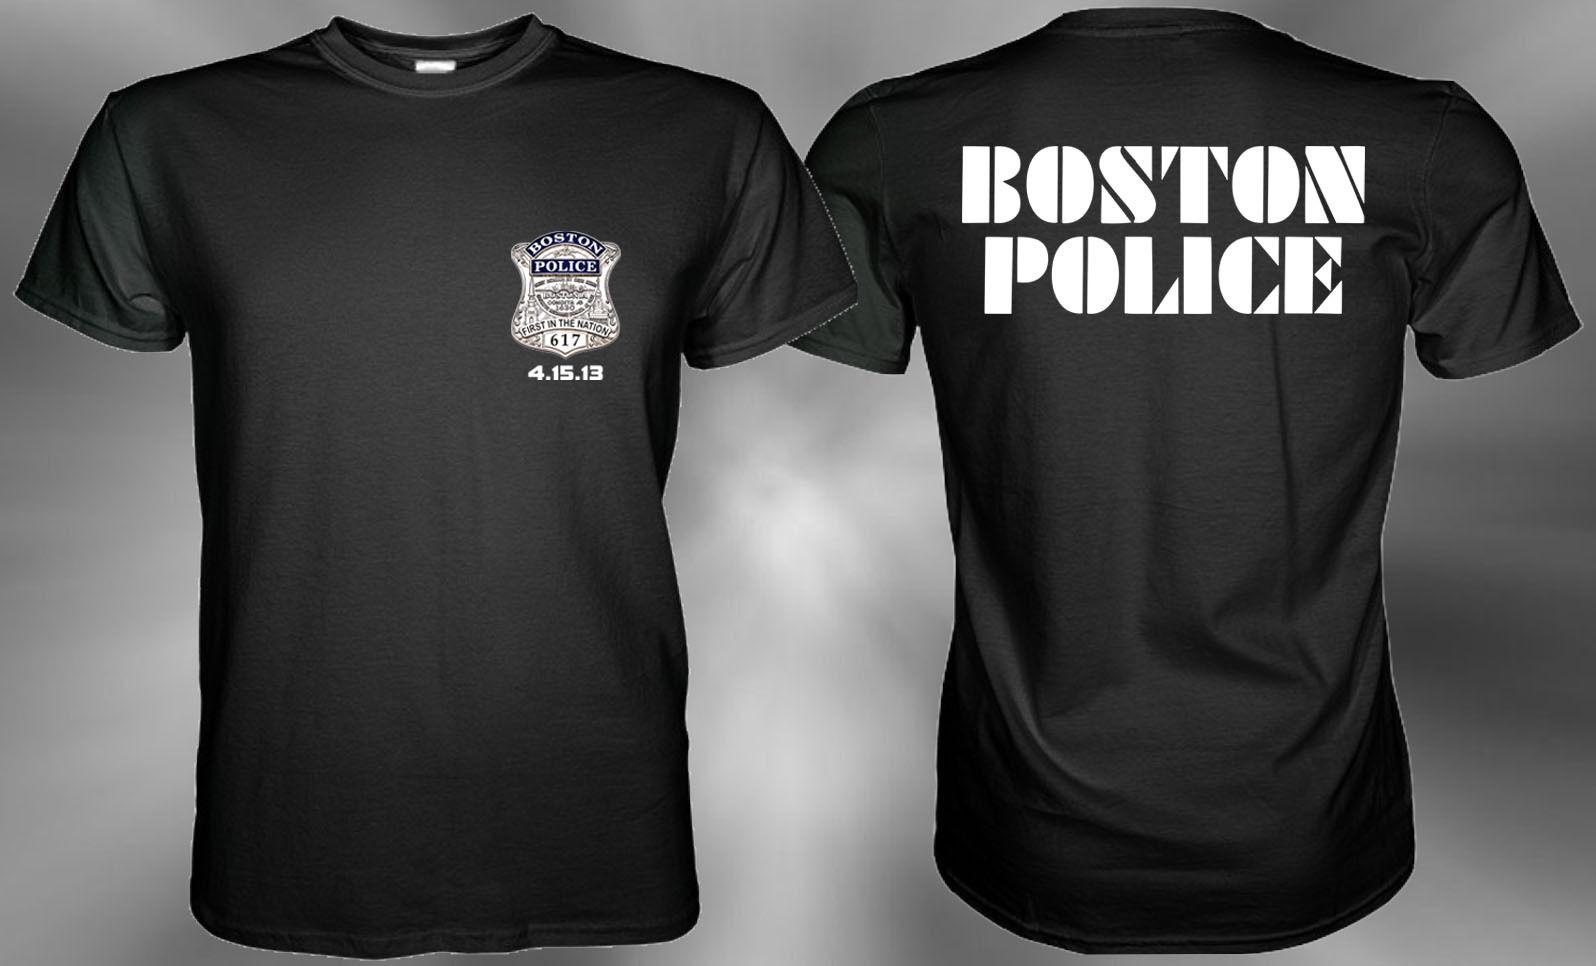 b8feabfe1dd3 Boston Police Black T Shirt Size S, M, L, XL, 2XL, 3XL Hip Hop Style Tops Tee  Shirt Casual Man Short Sleeve Leisure Online Shopping T Shirt Cool Shirts  ...